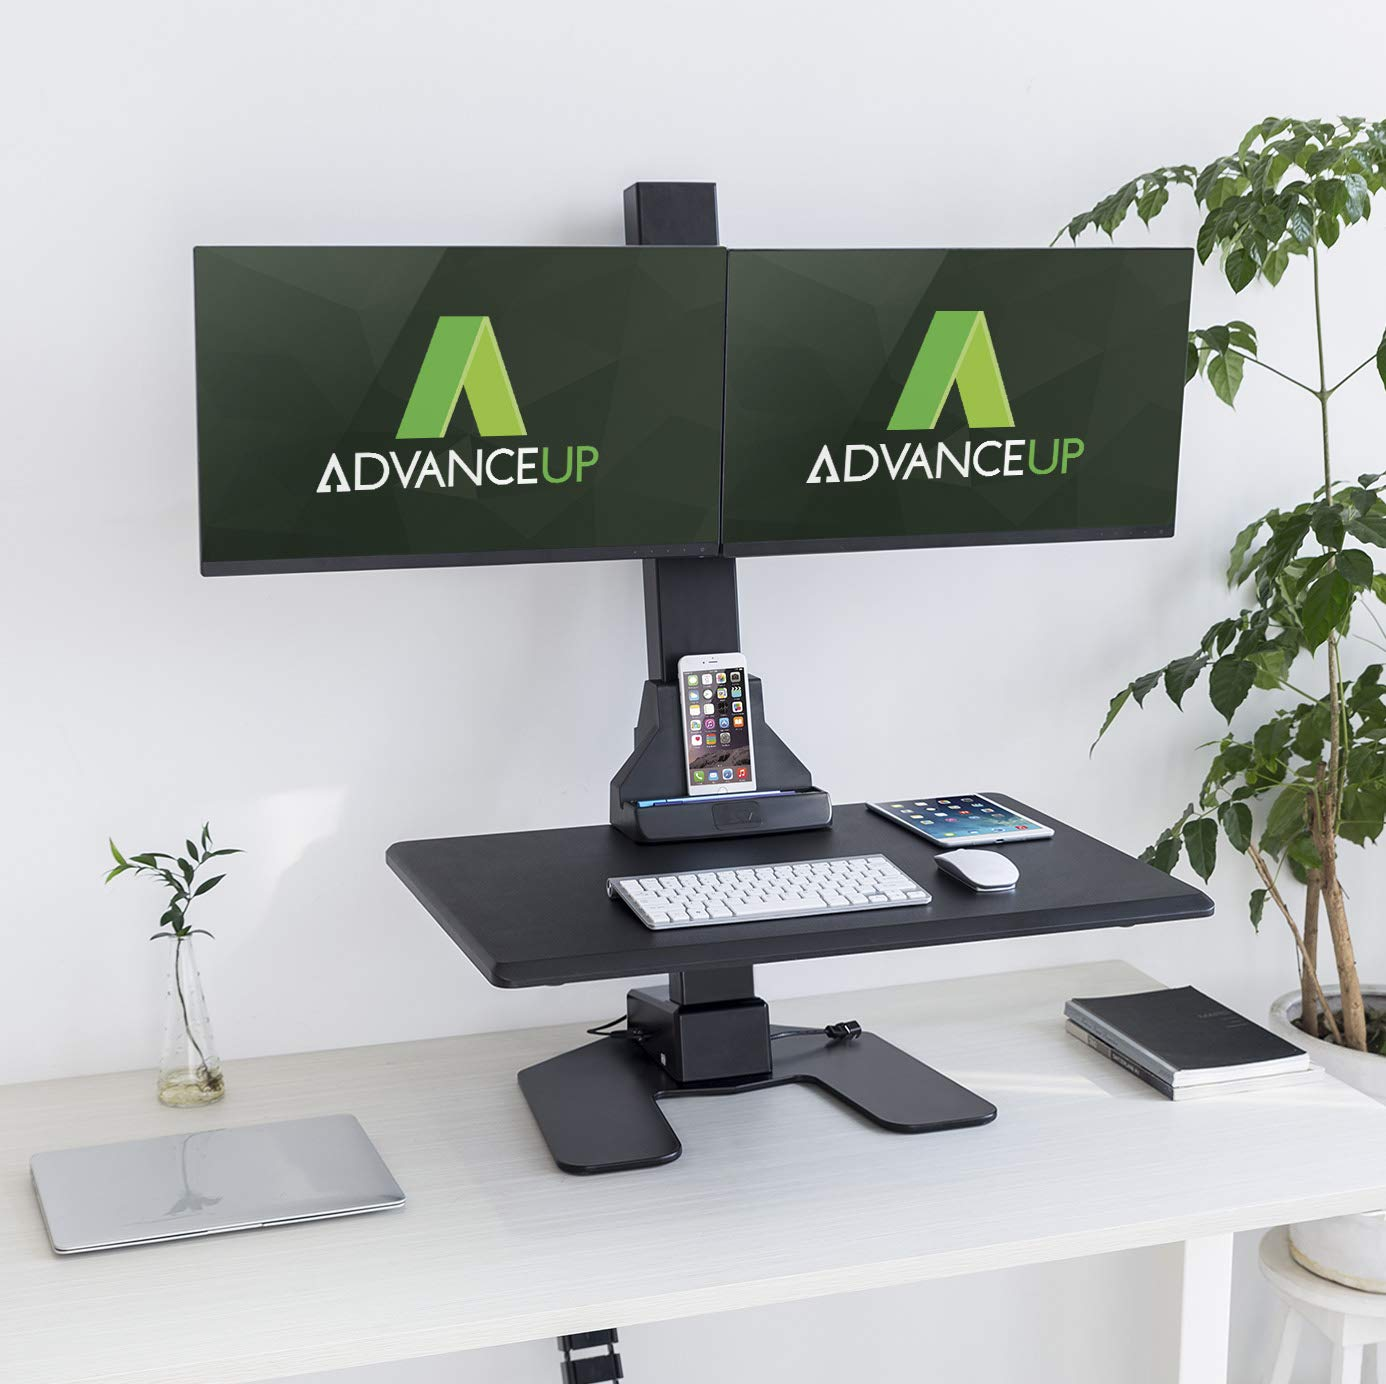 AdvanceUp Electric Ergonomic Standing Desk Converter Riser, Motorized Height Adjustable Stand Up Computer Station, 44lbs Capacity with Dual Swilvel Monitor Mount, Black, Standard